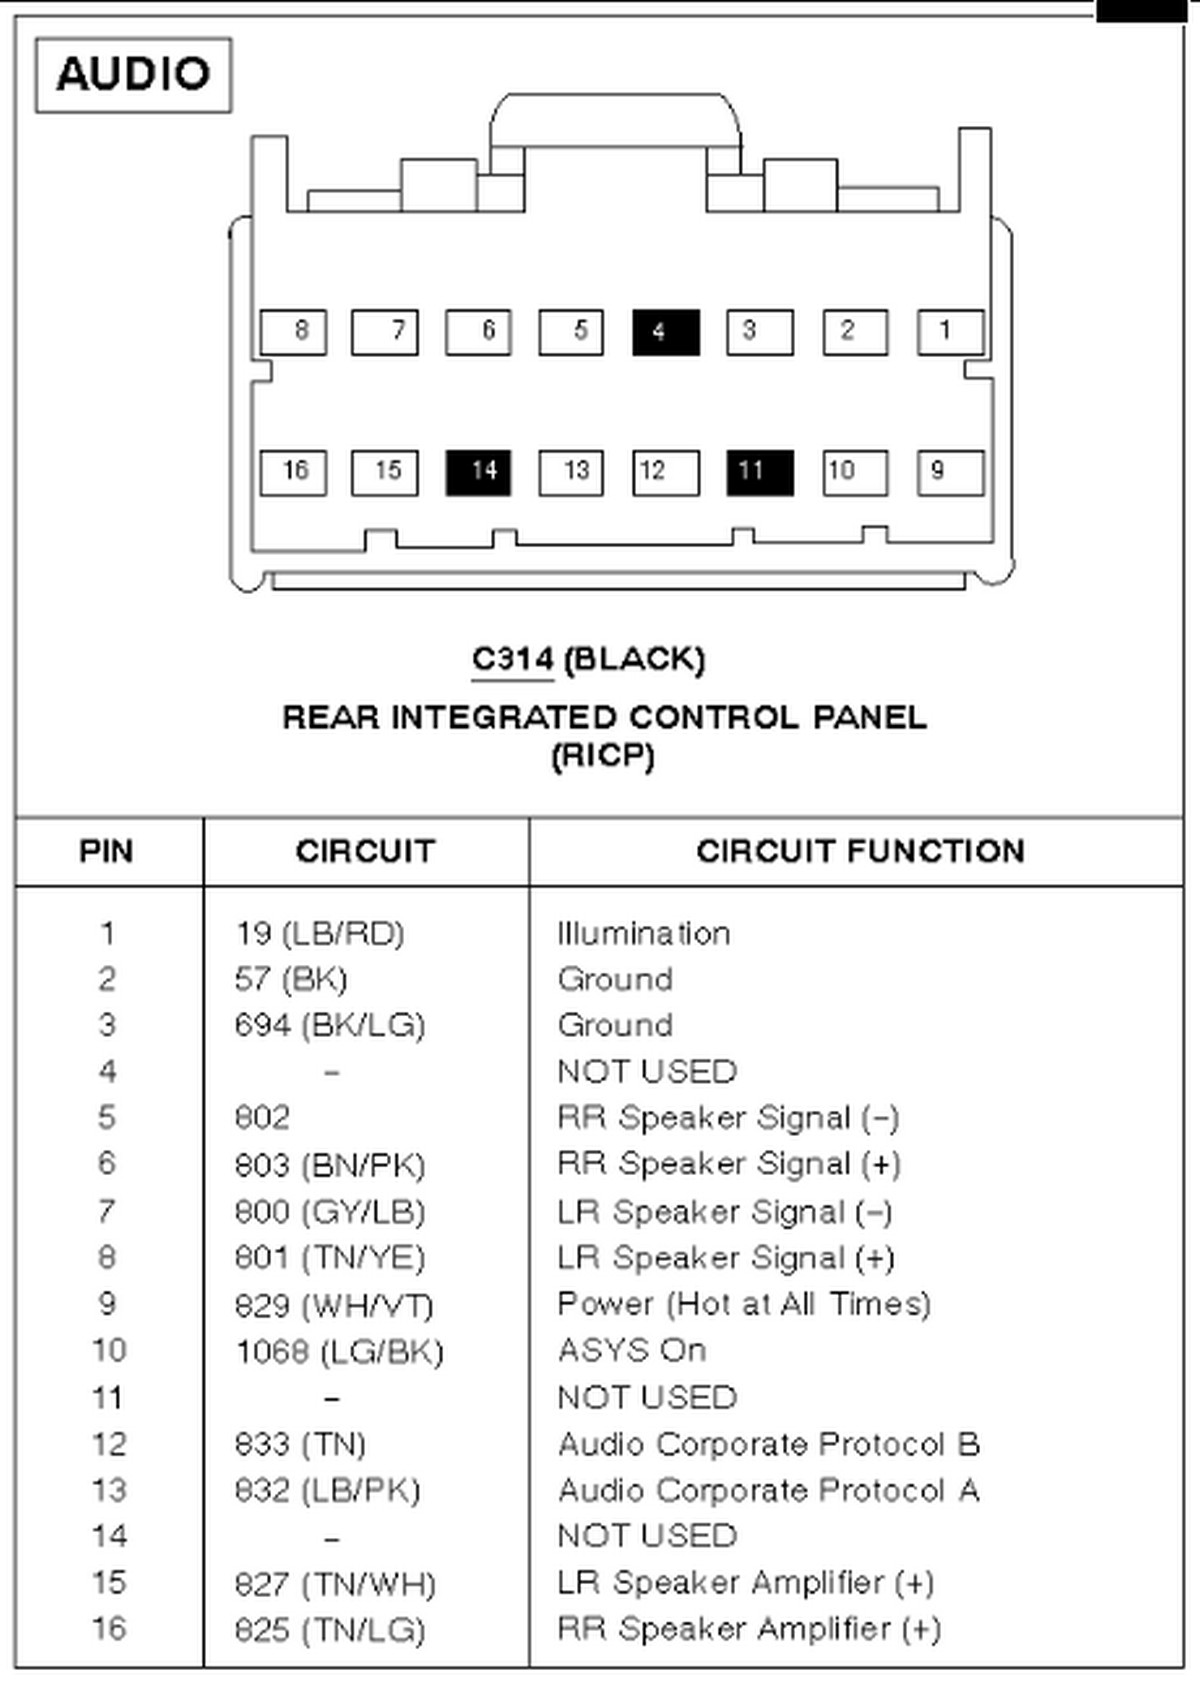 Ford Car Radio Stereo Audio Wiring Diagram Autoradio Connector Wire Installation Schematic Schema Esquema De Conexiones Stecker Konektor Connecteur Cable Shema